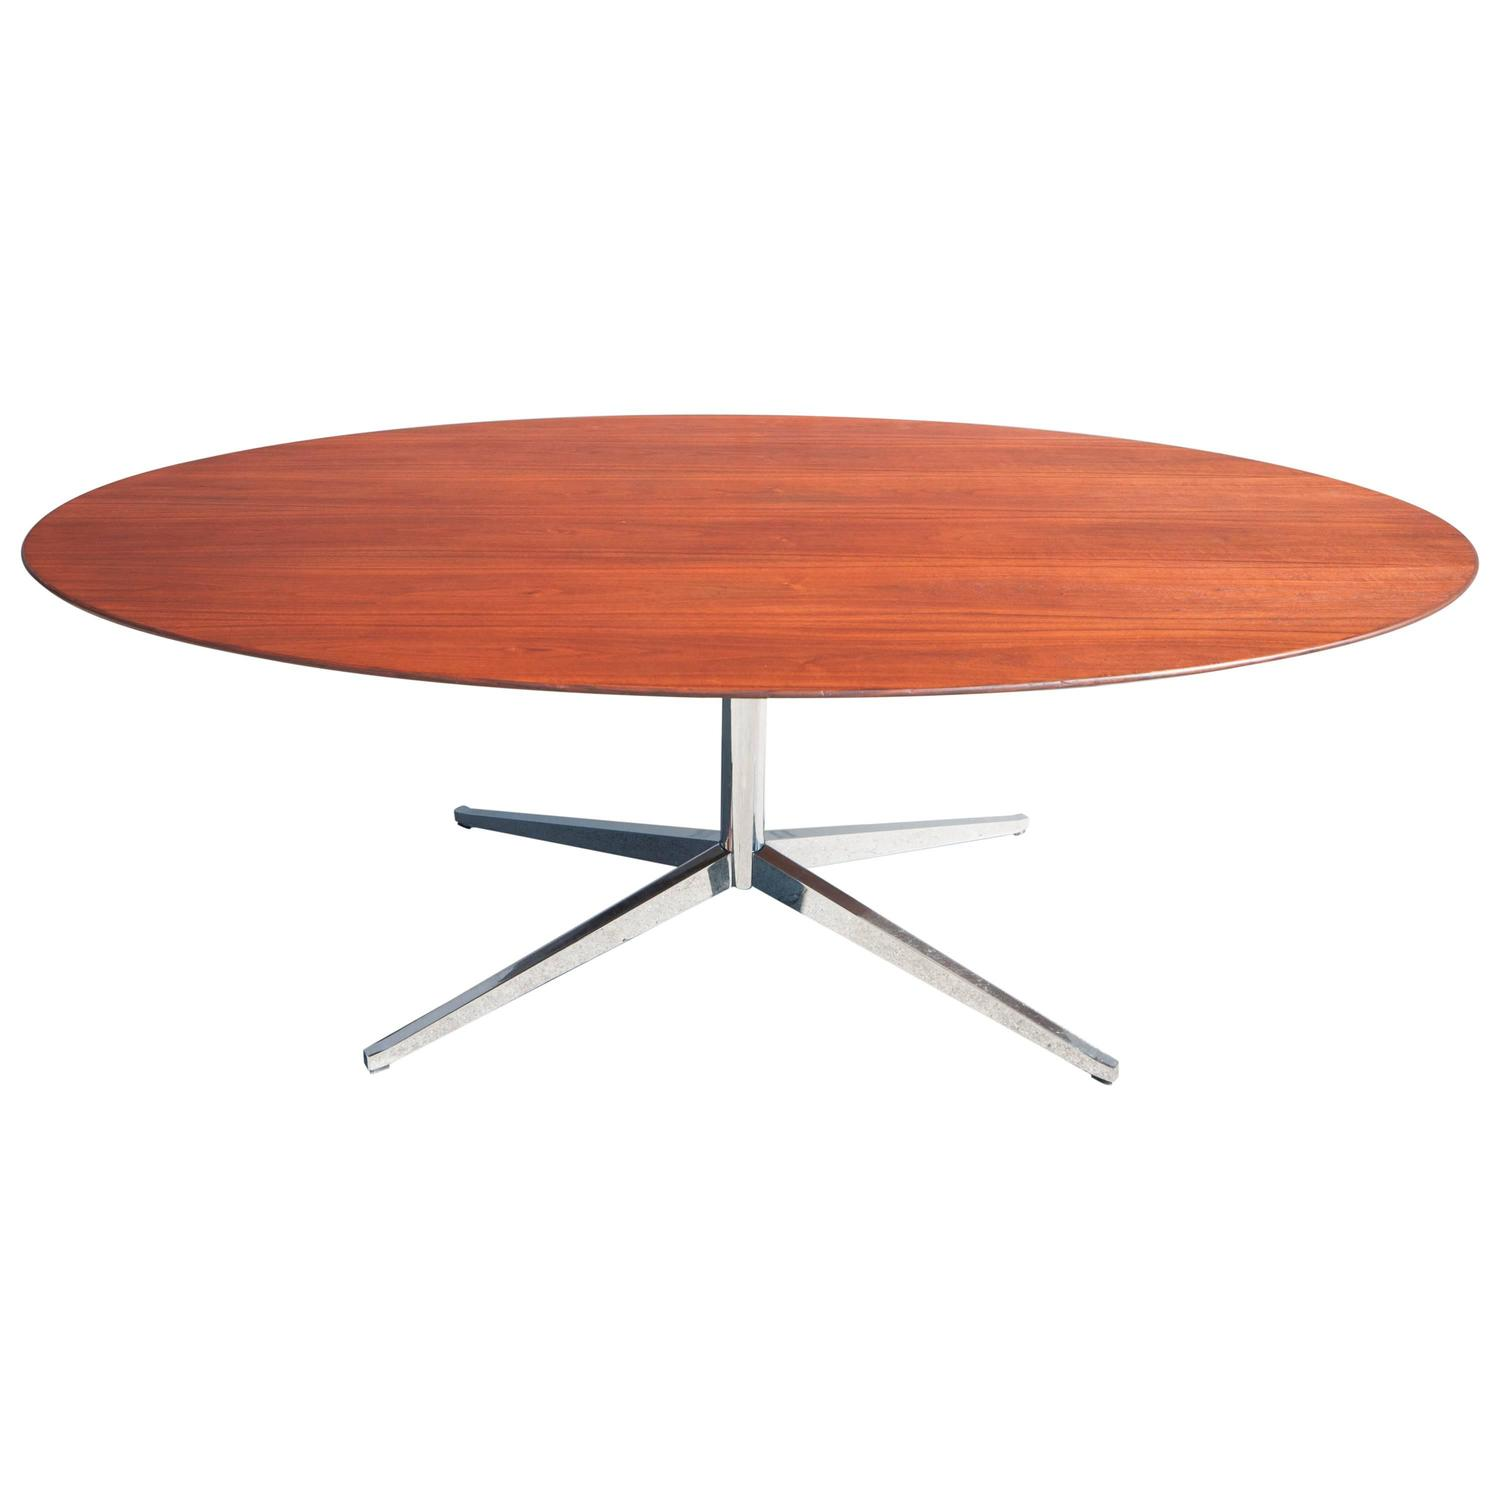 Knoll Dining Table Florence Knoll Dining Table At  : 3325352z from www.amlibgroup.com size 1500 x 1500 jpeg 52kB